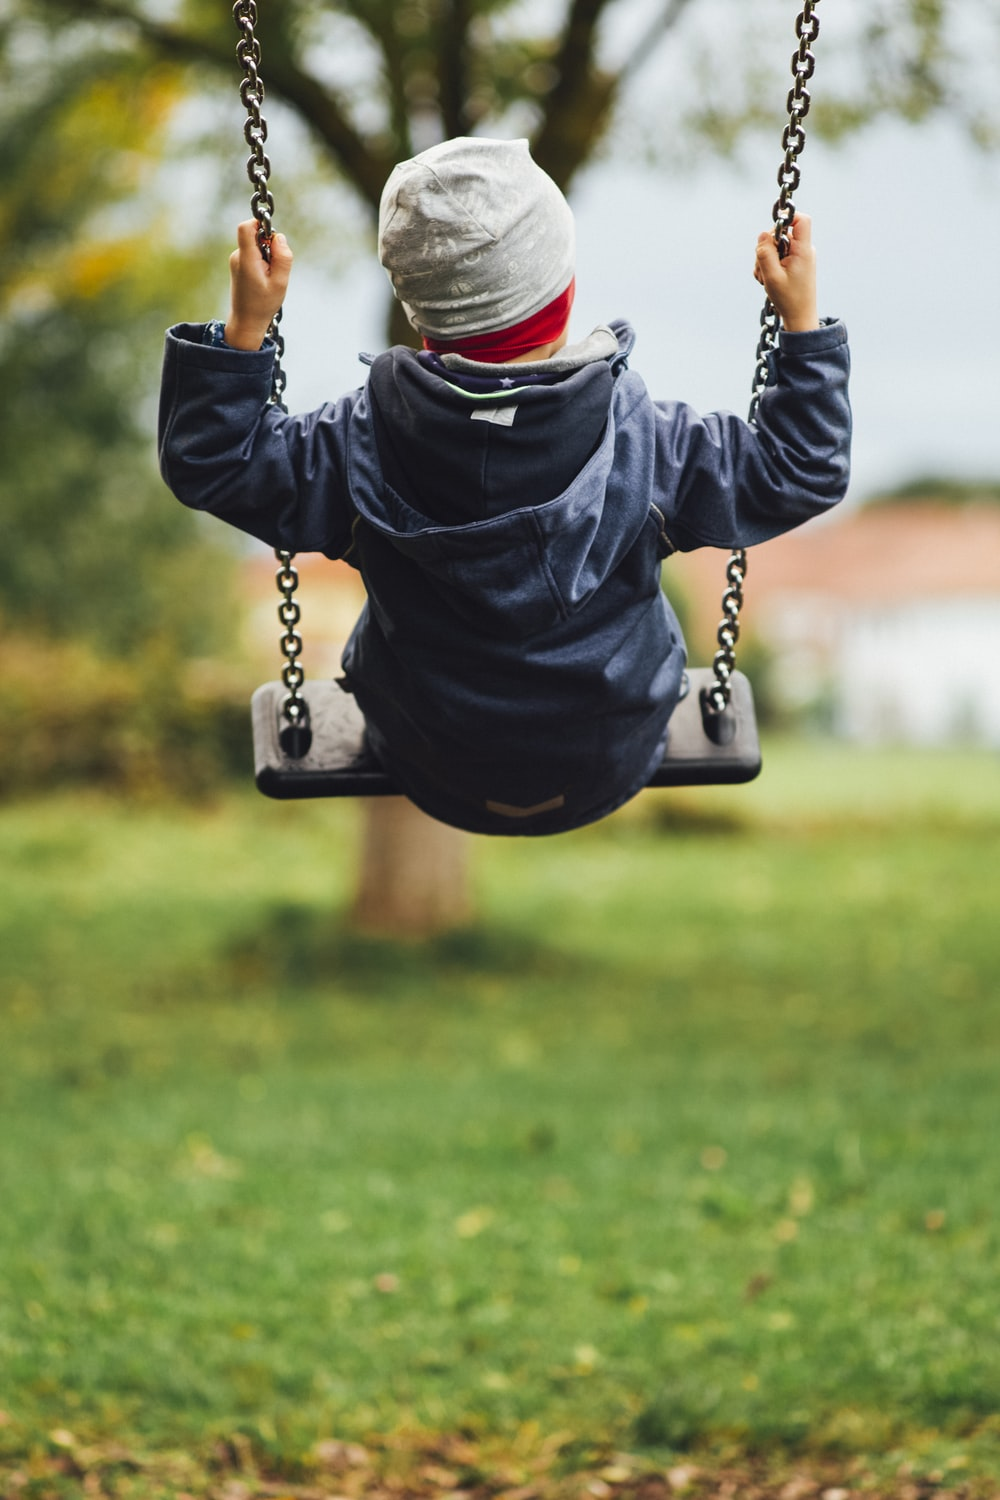 child in gray long sleeve shirt sitting on swing during daytime